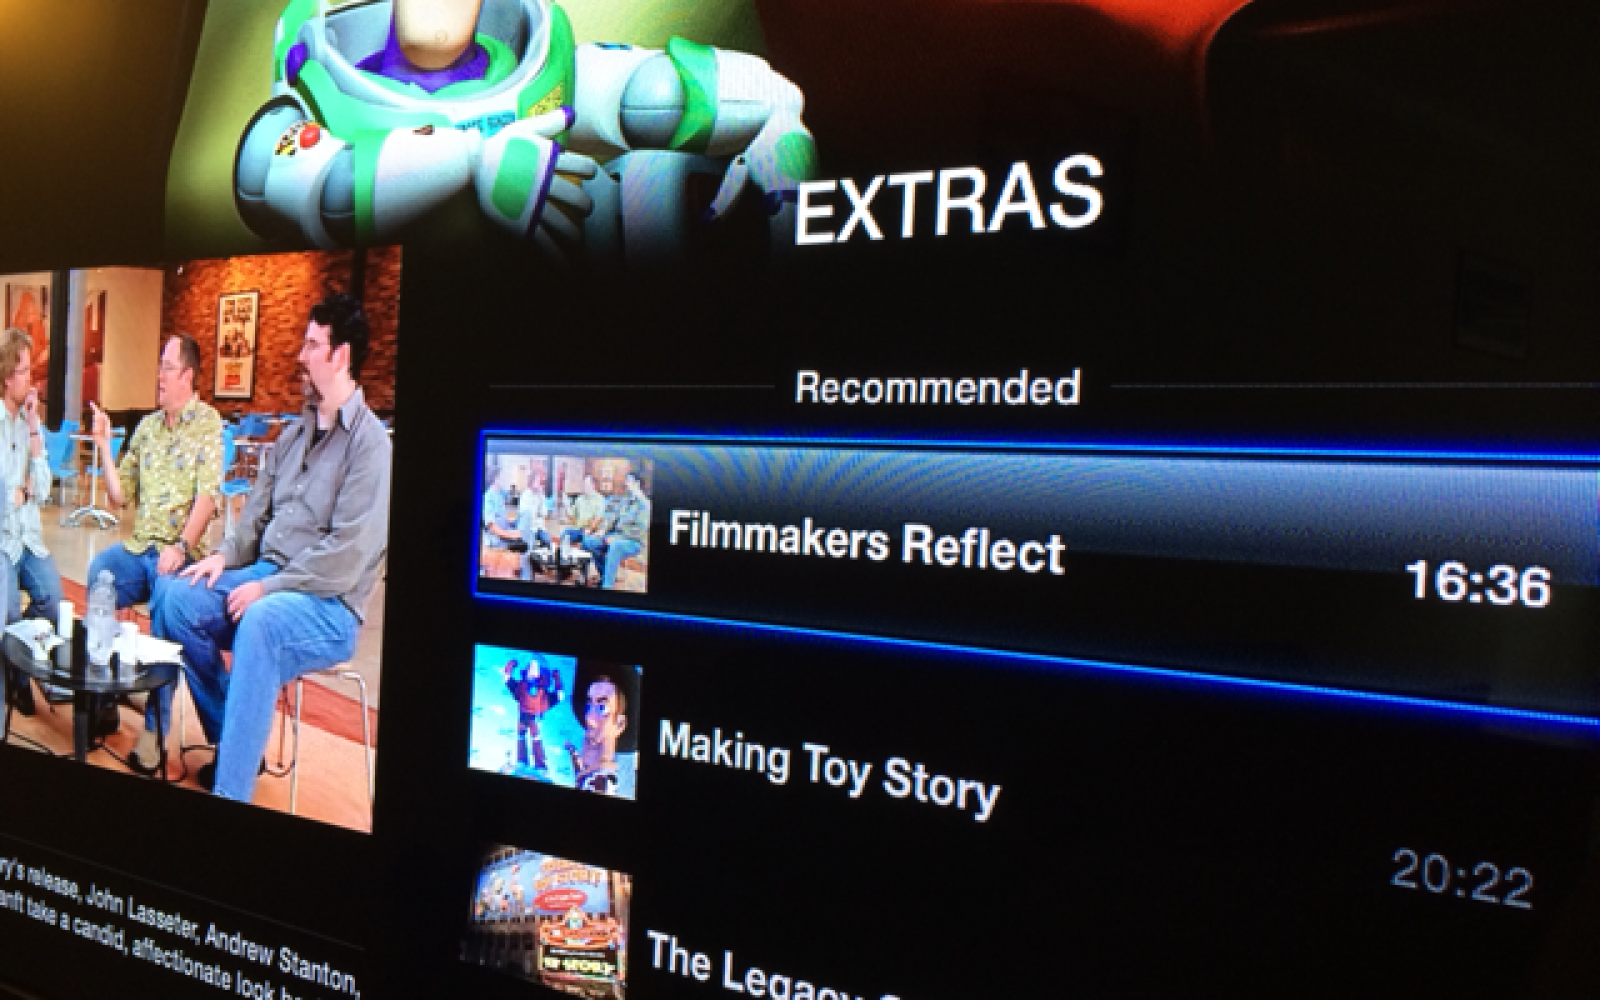 Apple brings iTunes Extras to Apple TV, HD Extras to Macs today & iOS 8 in fall